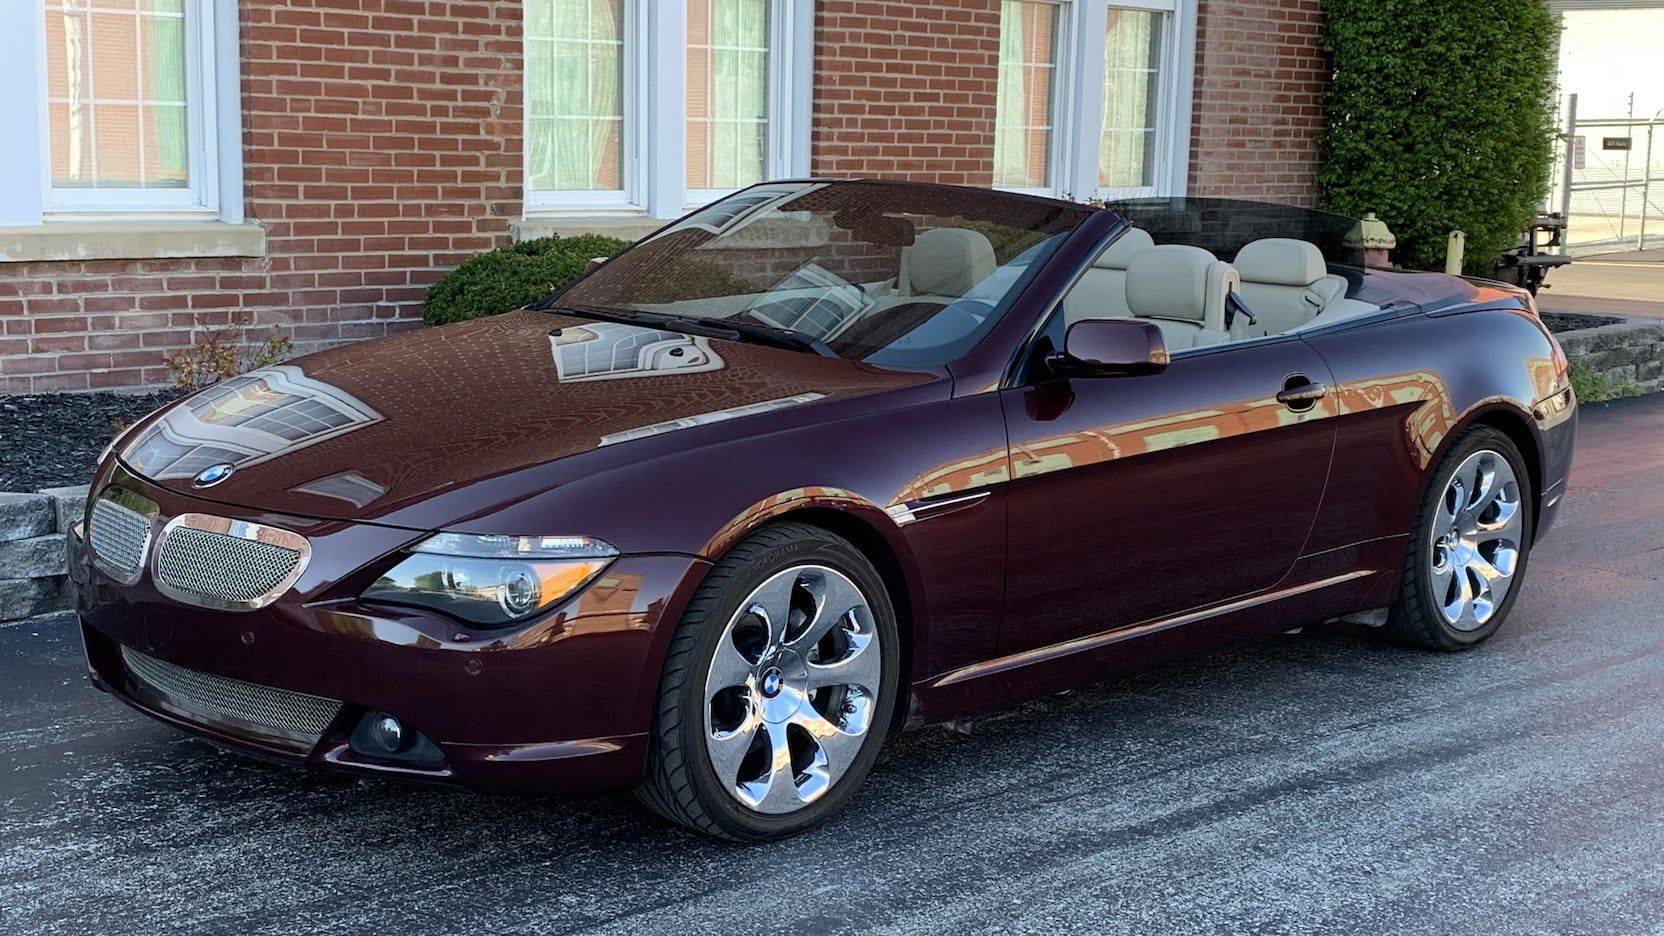 2006 Bmw 650i Convertible Bmw Bmw 650i Convertible